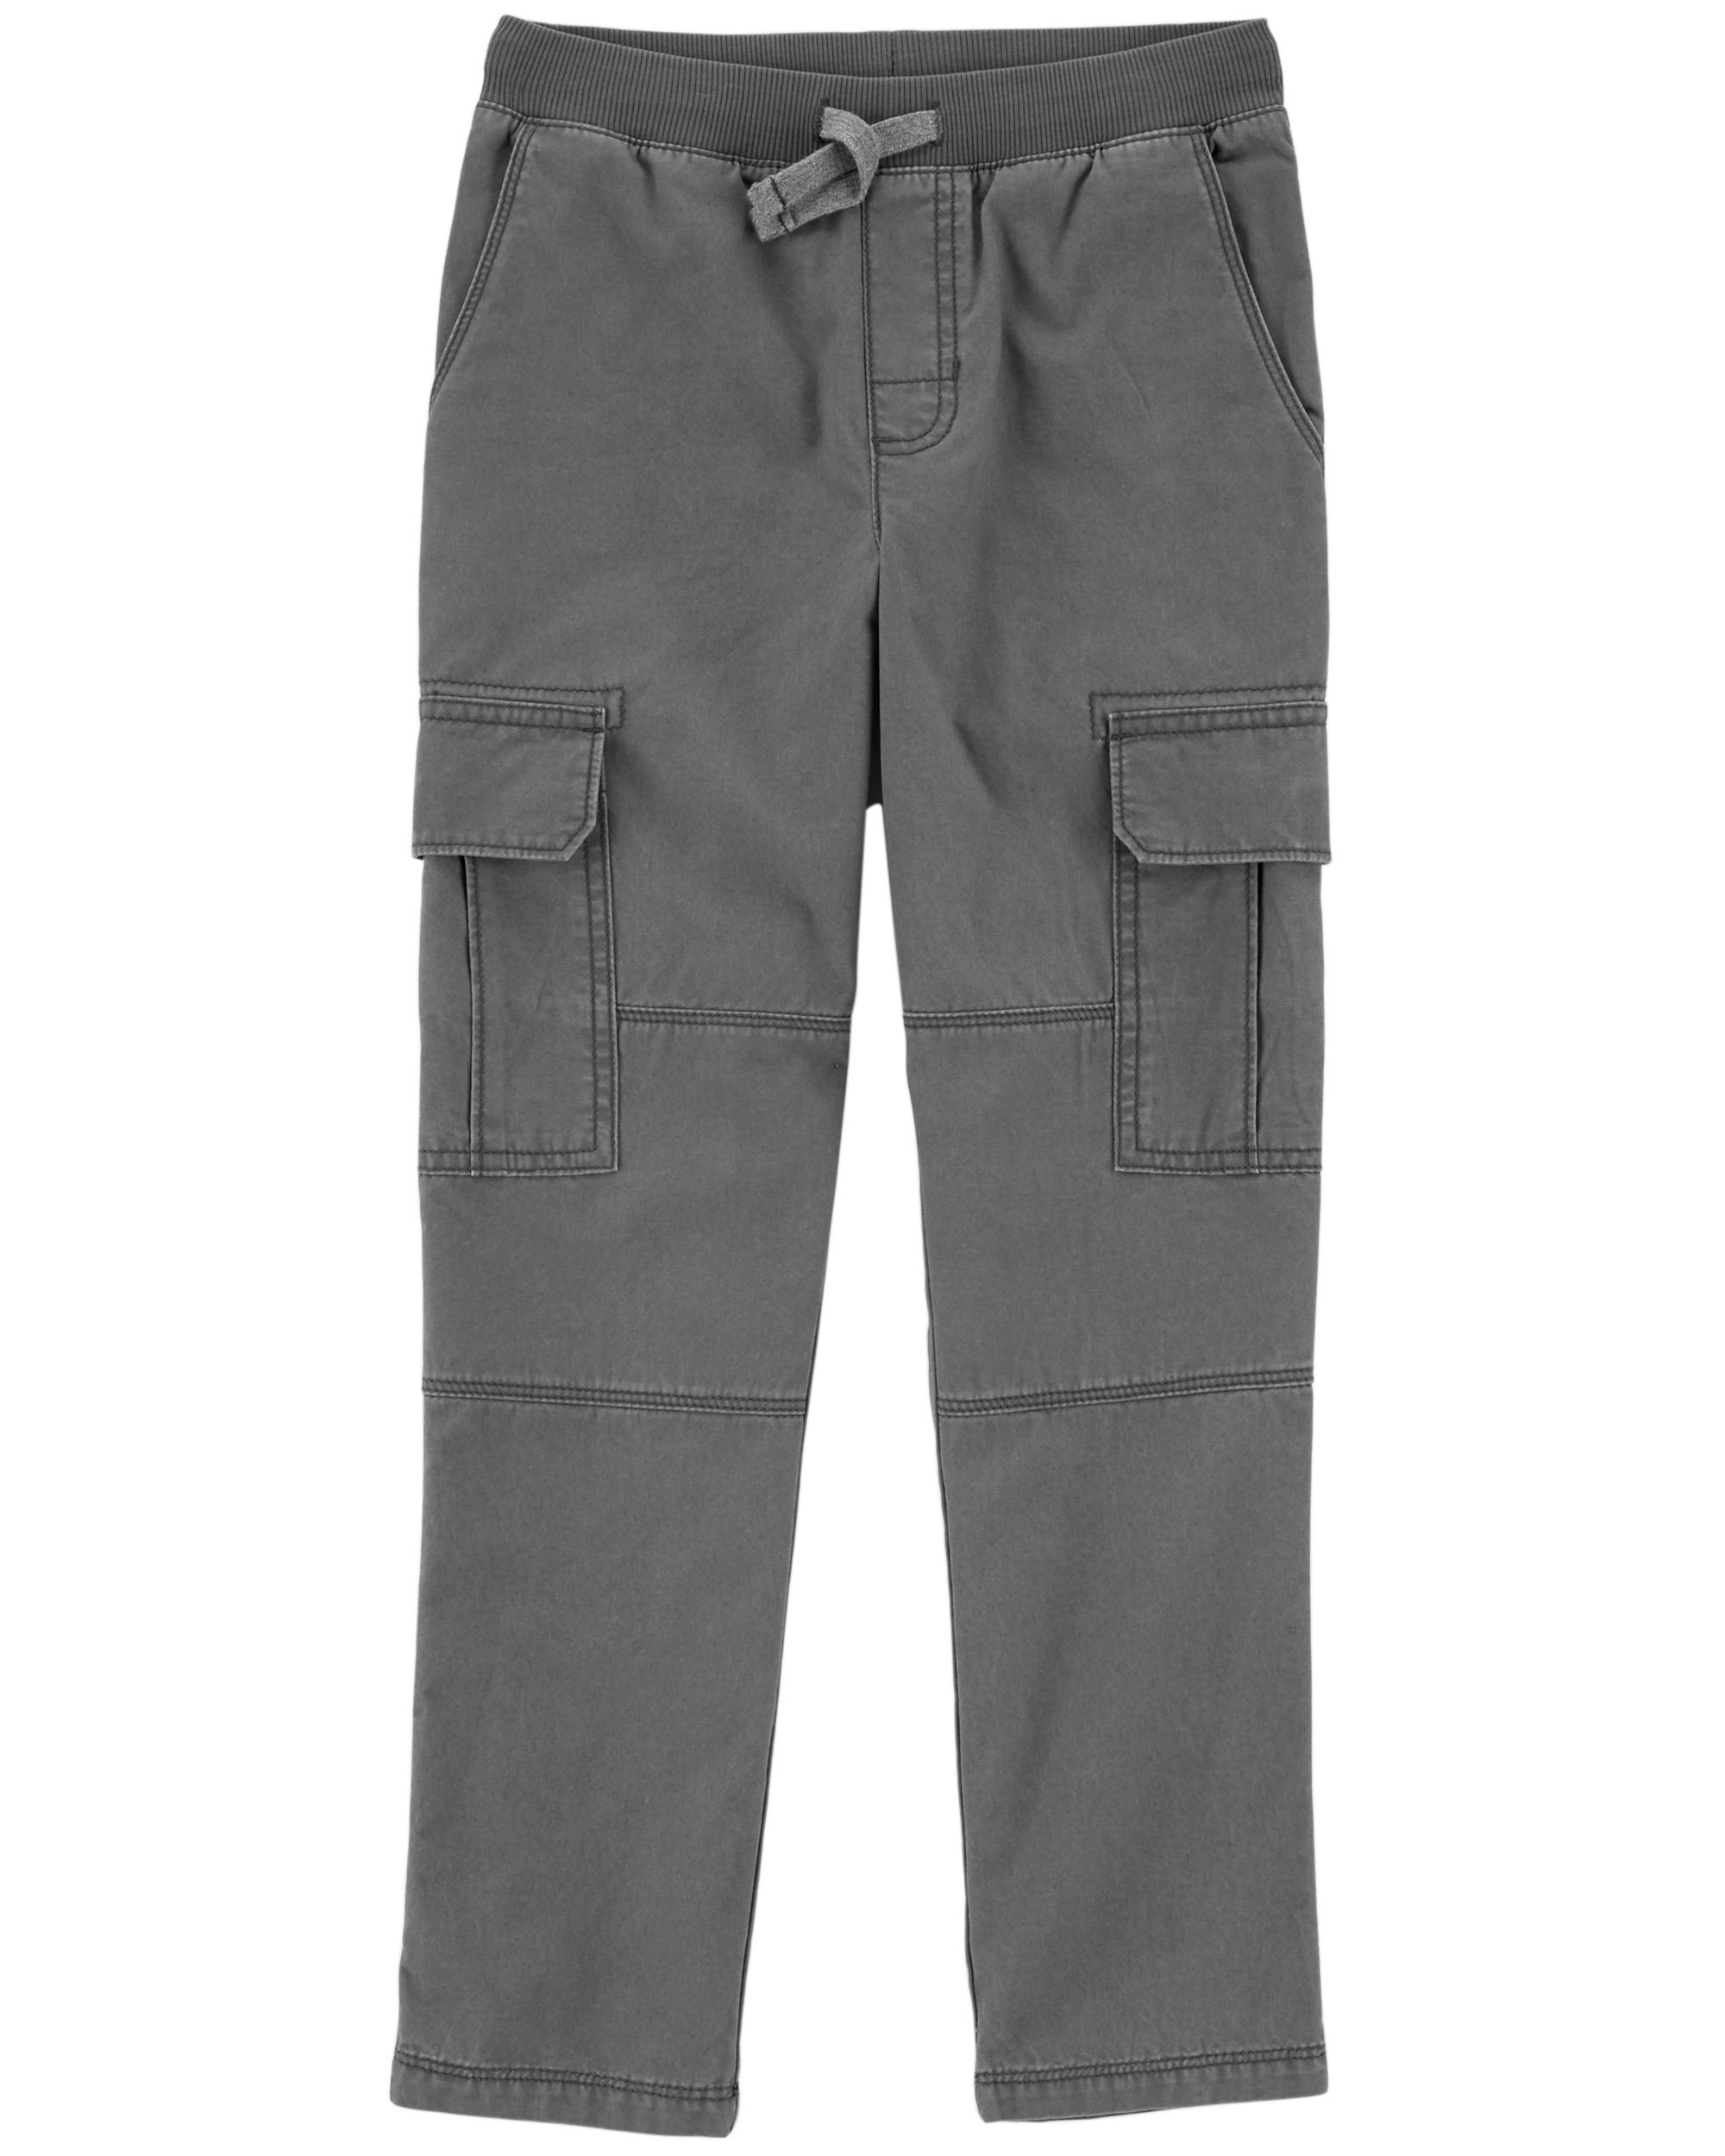 Carters Boys Jersey-Lined Utility Pants; Olive 3M